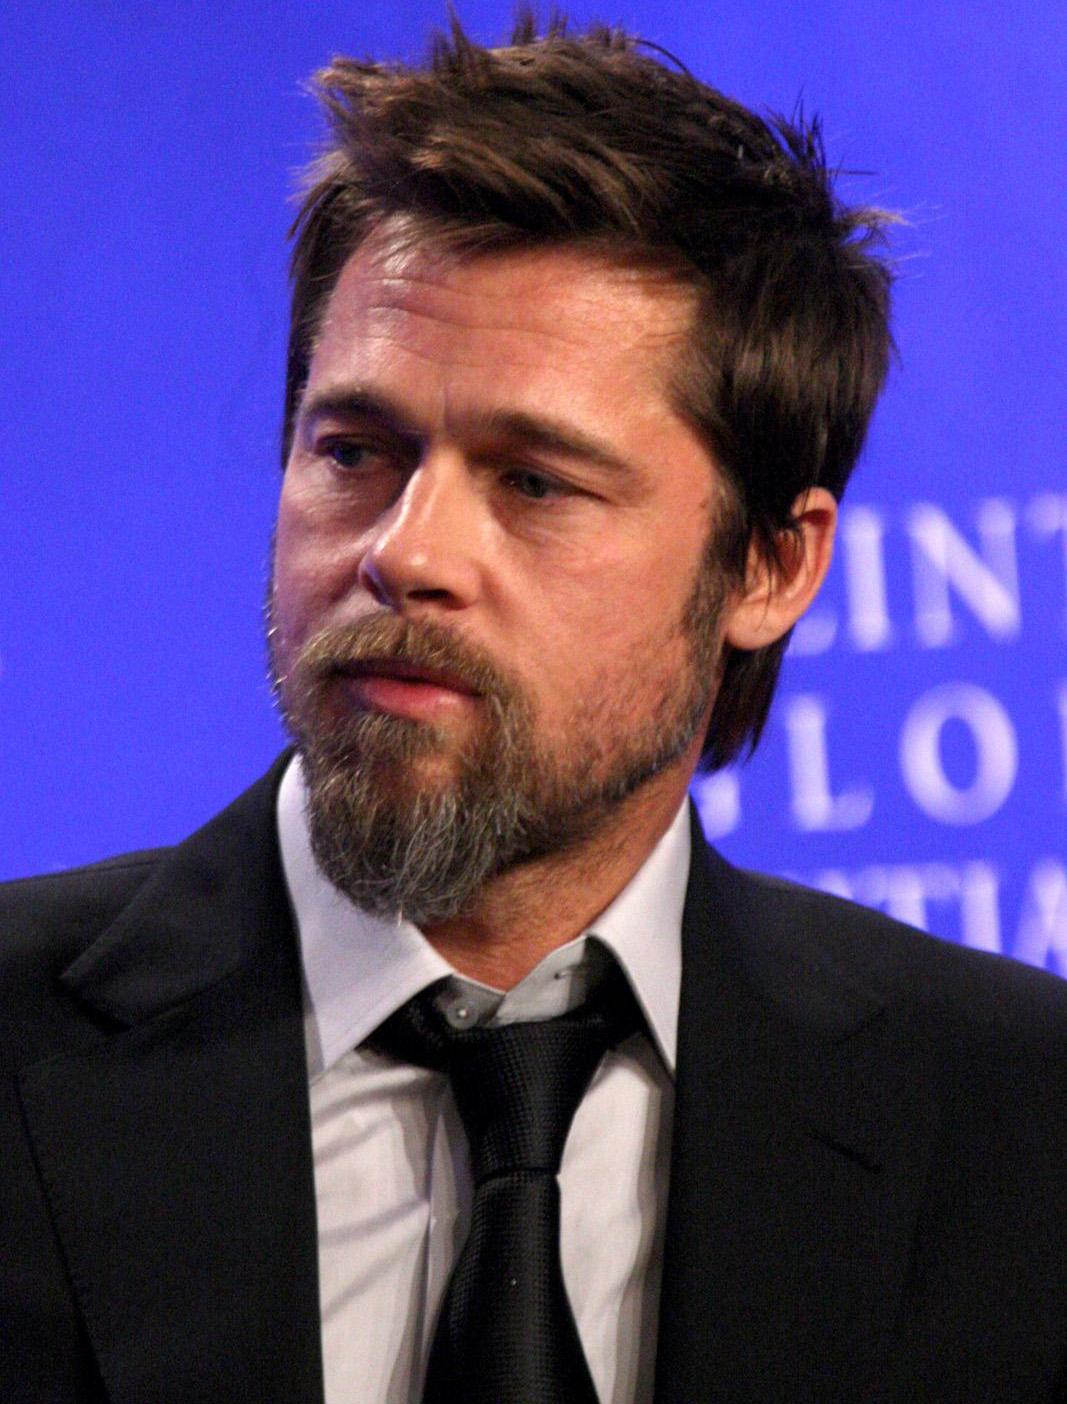 Online Auto Insurance >> hairstyles for men: Brad Pitt Hairstyles - Documenting His ...